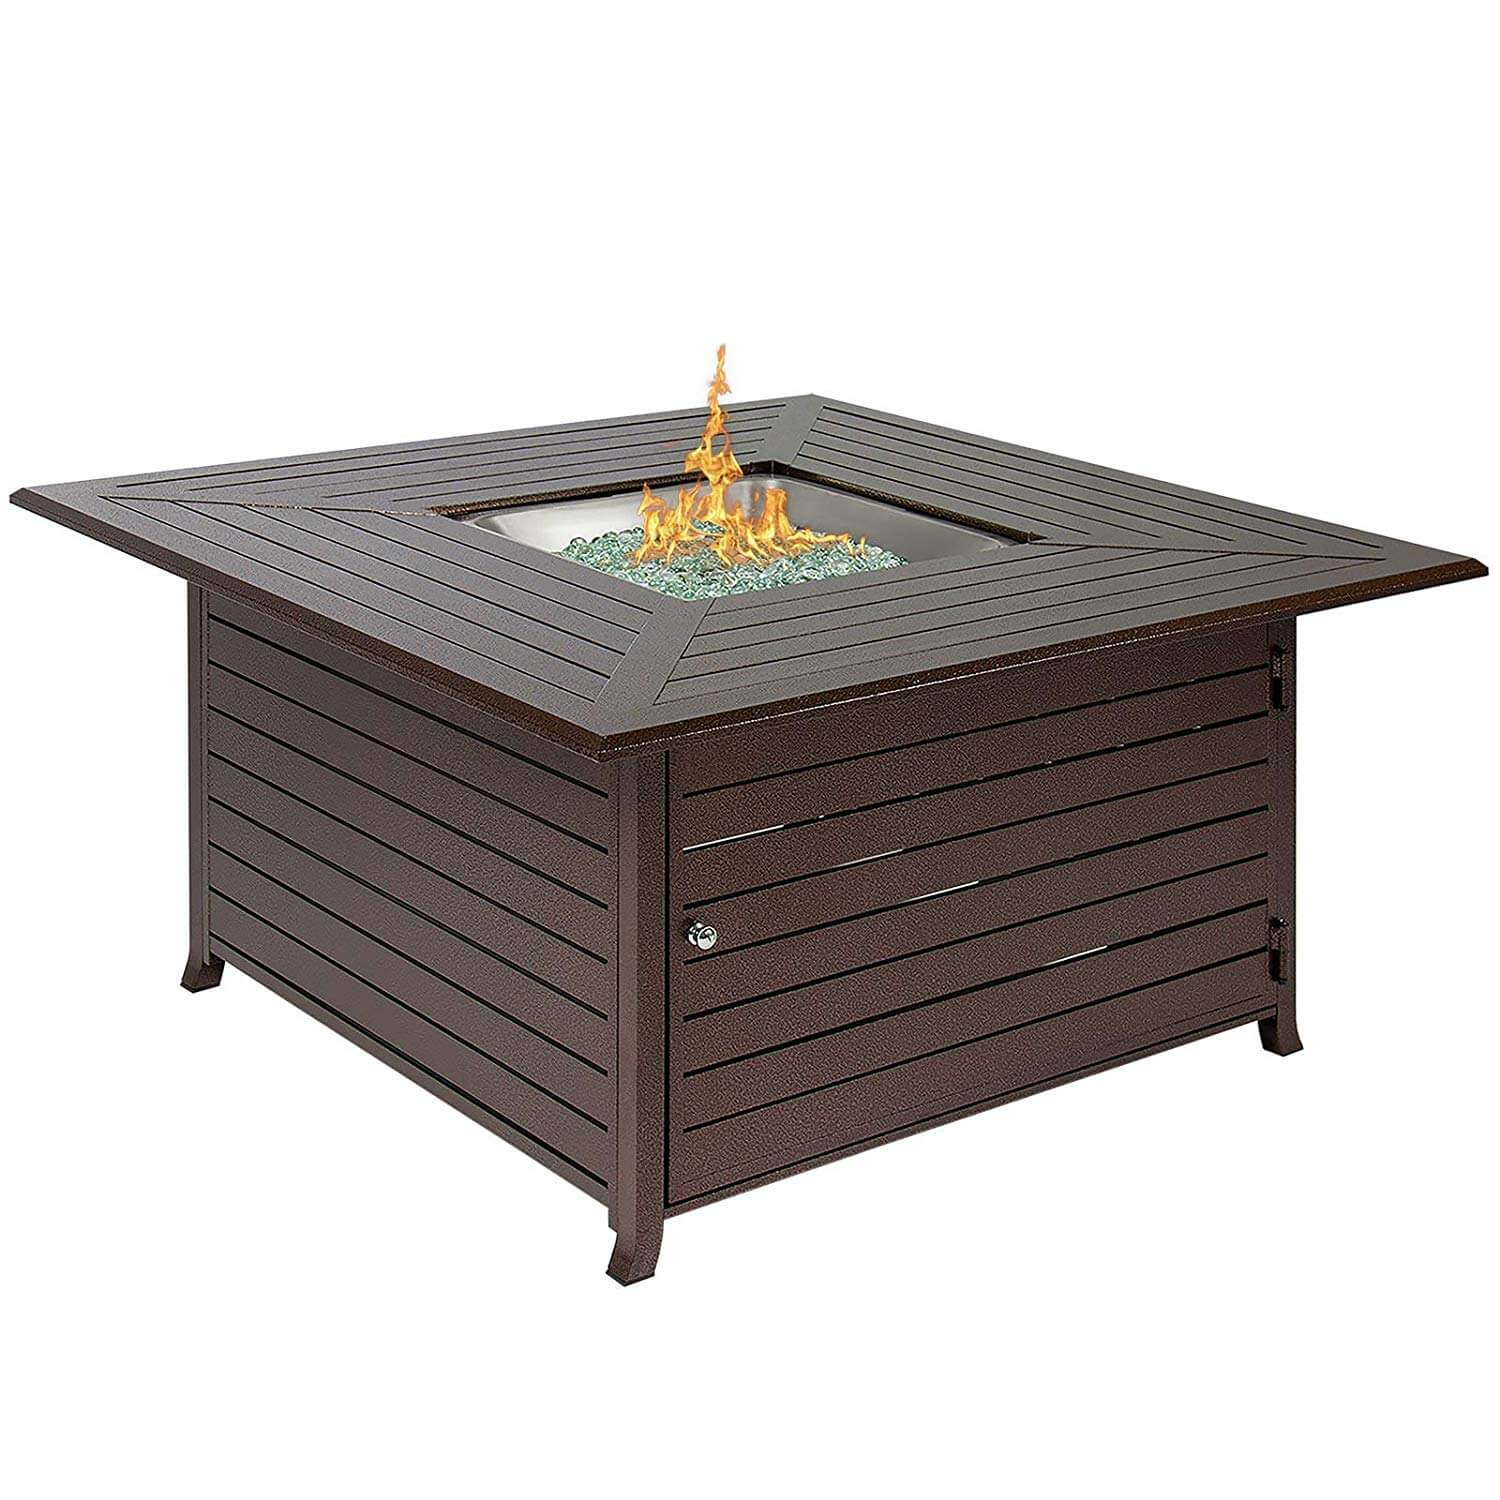 Best Choice Products BCP Extruded Aluminum Gas Outdoor Fire Pit Table